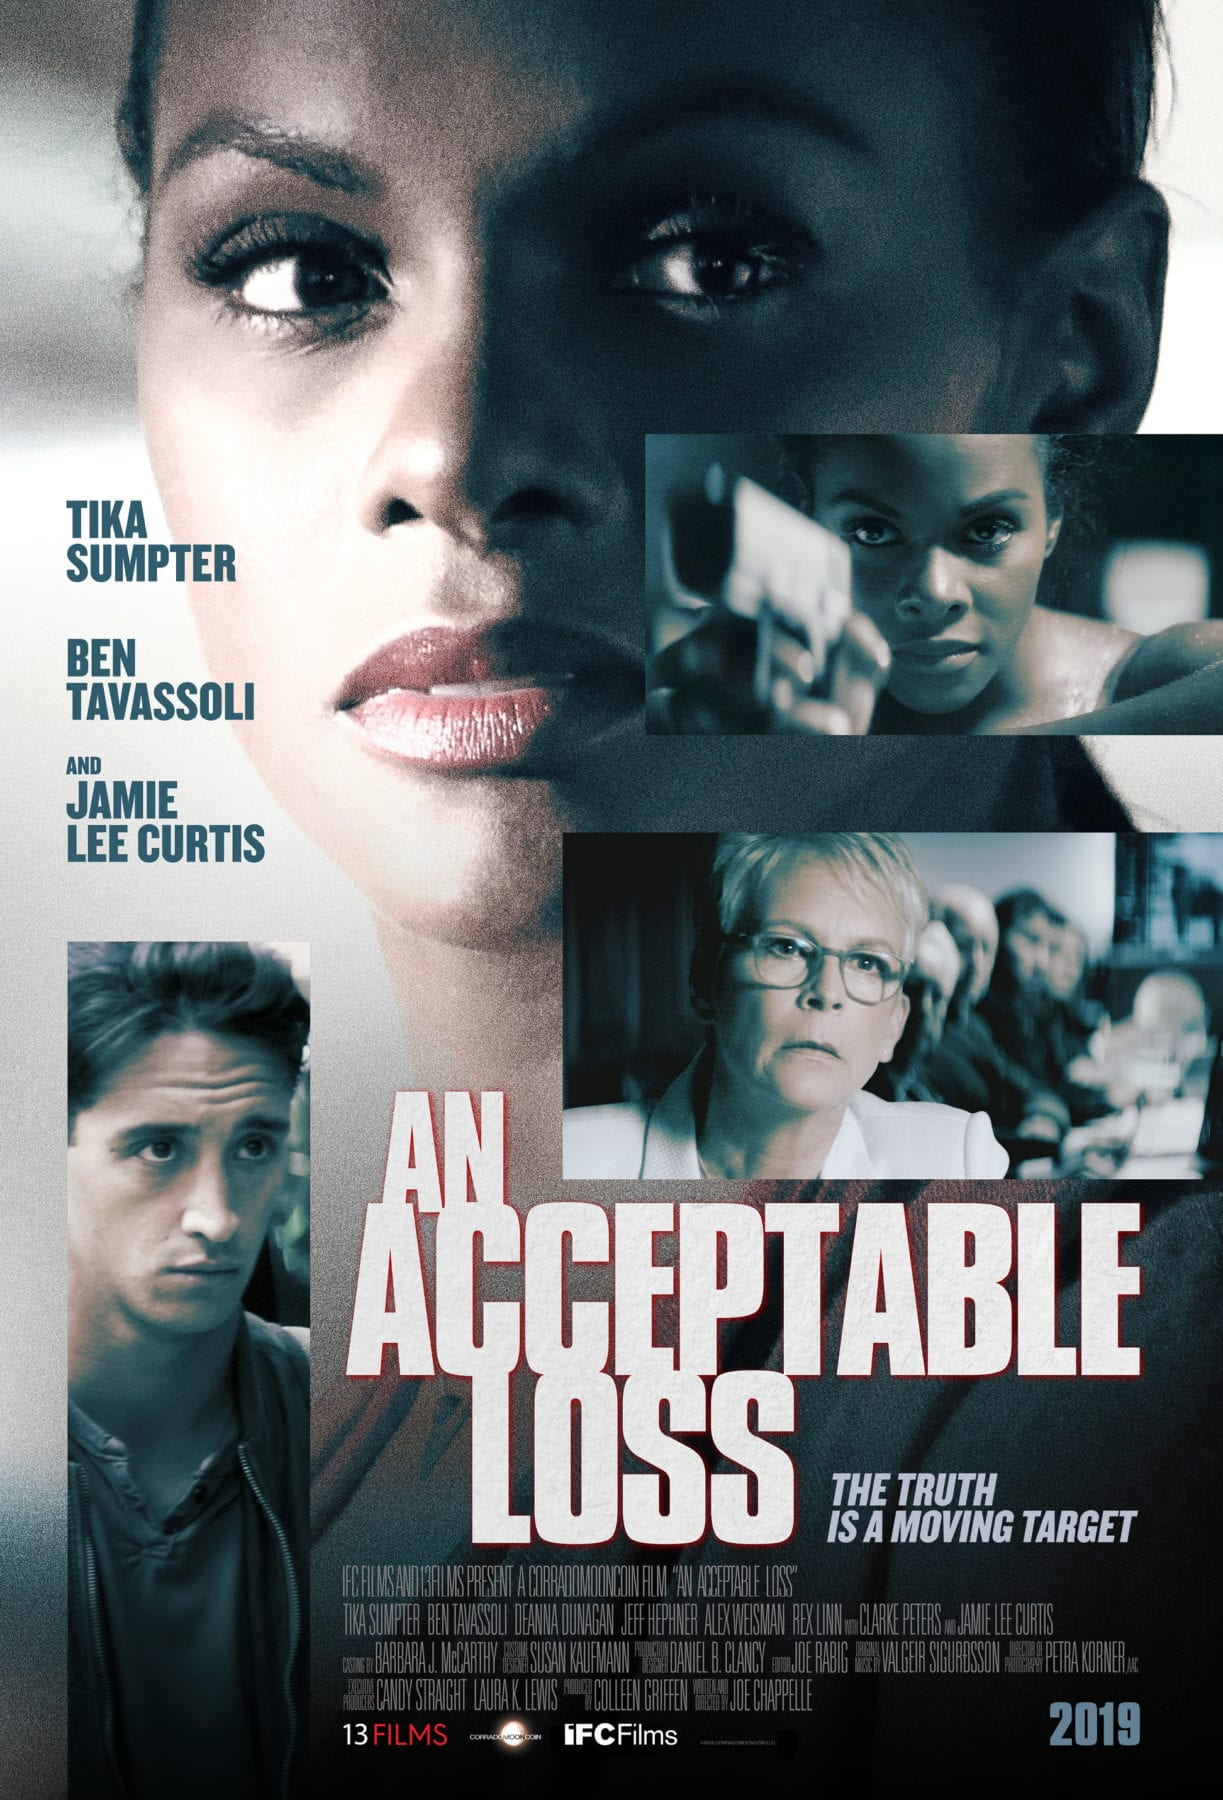 acceptable loss poster dvd movies posters film cover pages hollywood